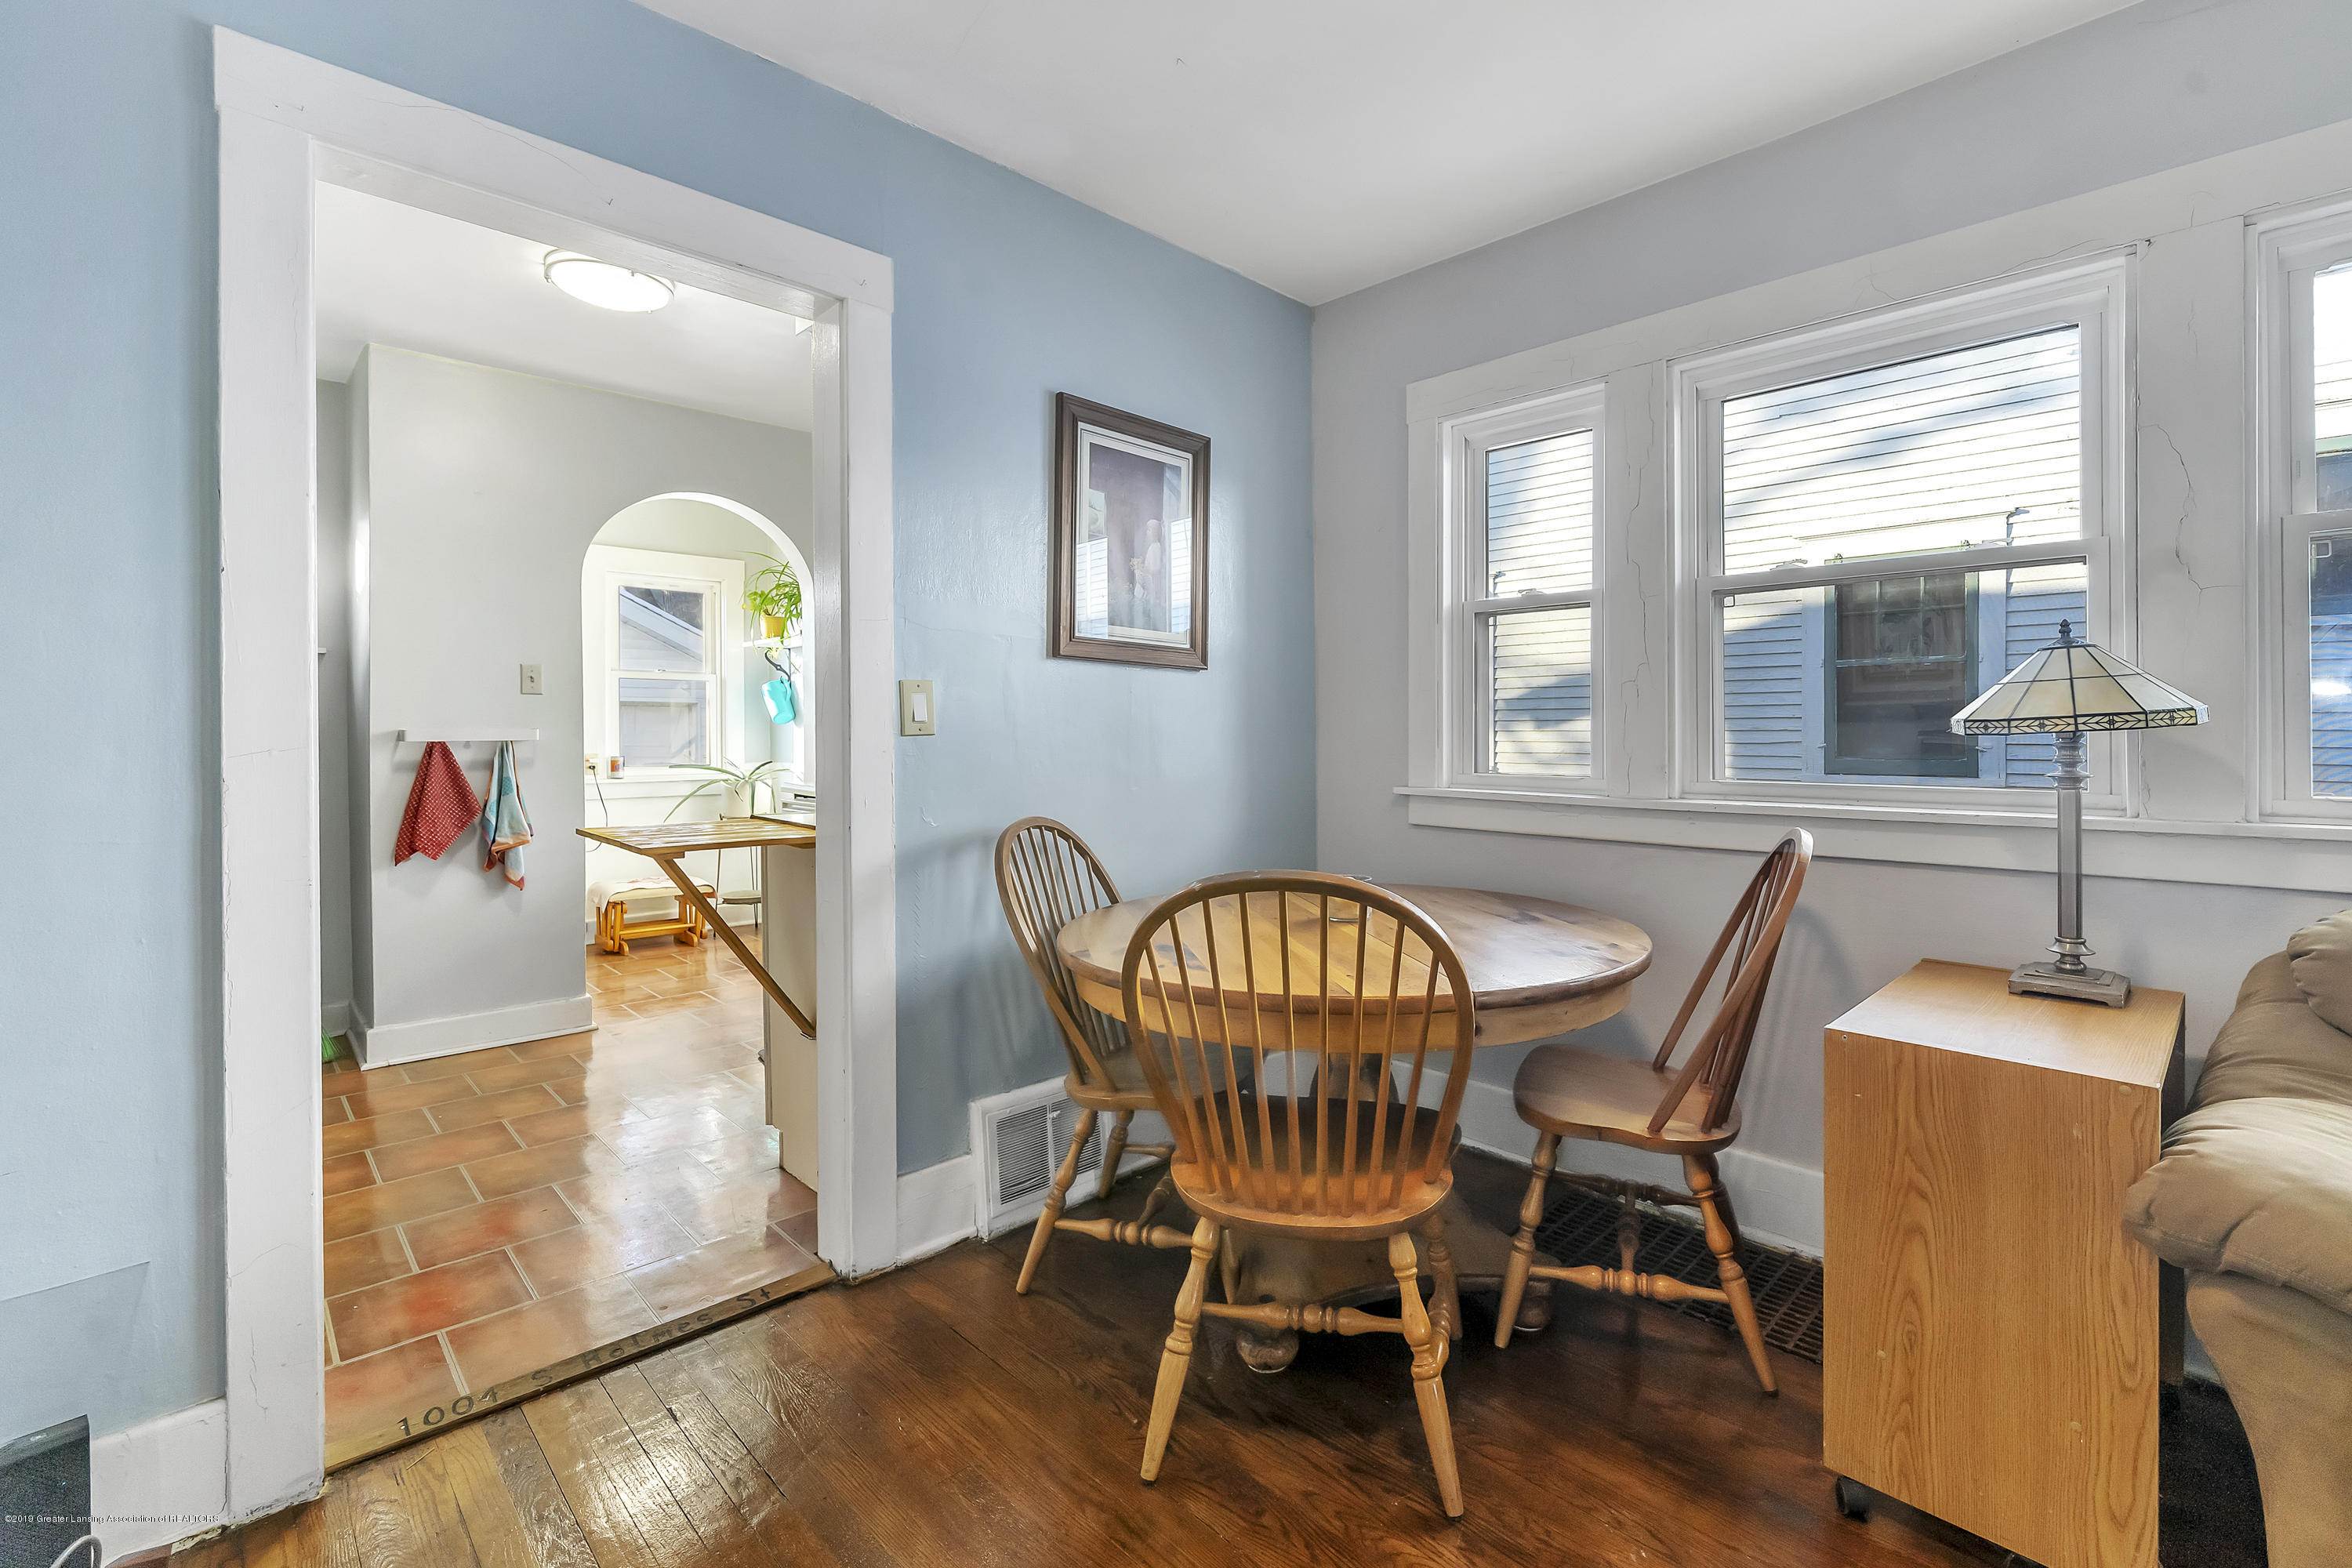 1004 S Holmes St - 1004-S-Holmes-st-WindowStill-Real-Estate - 11